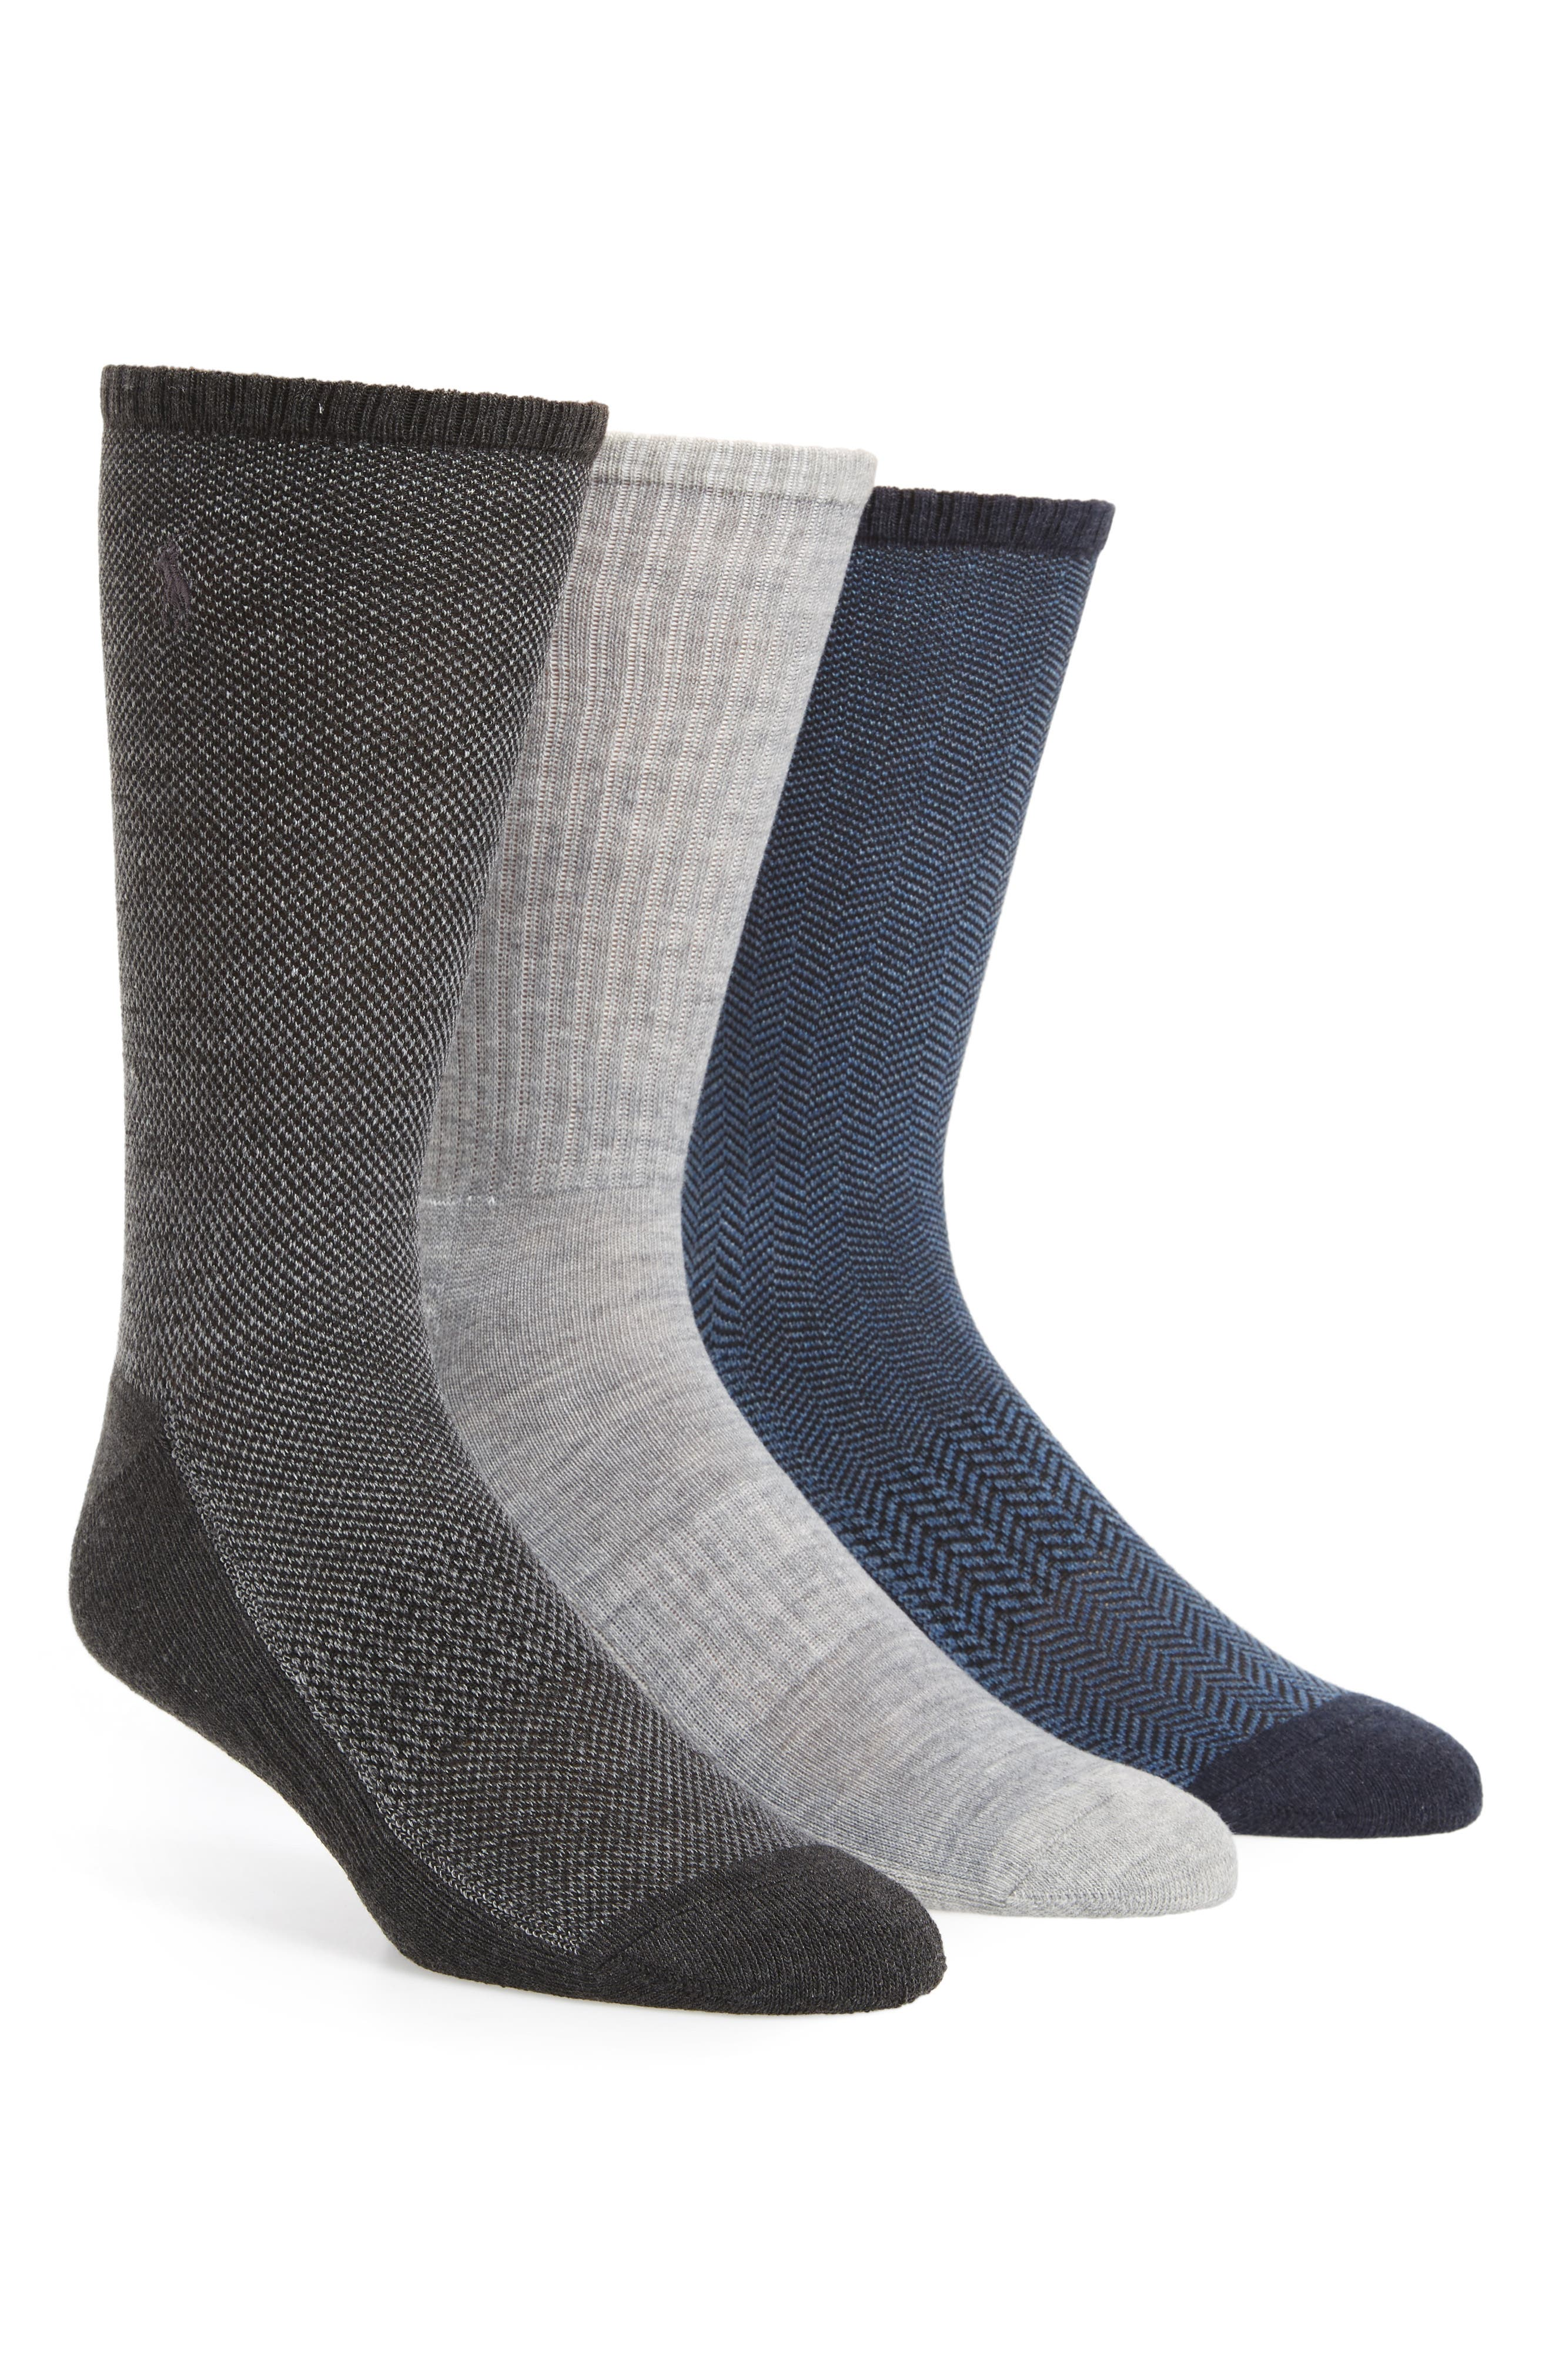 3-Pack Crew Socks,                         Main,                         color, 029